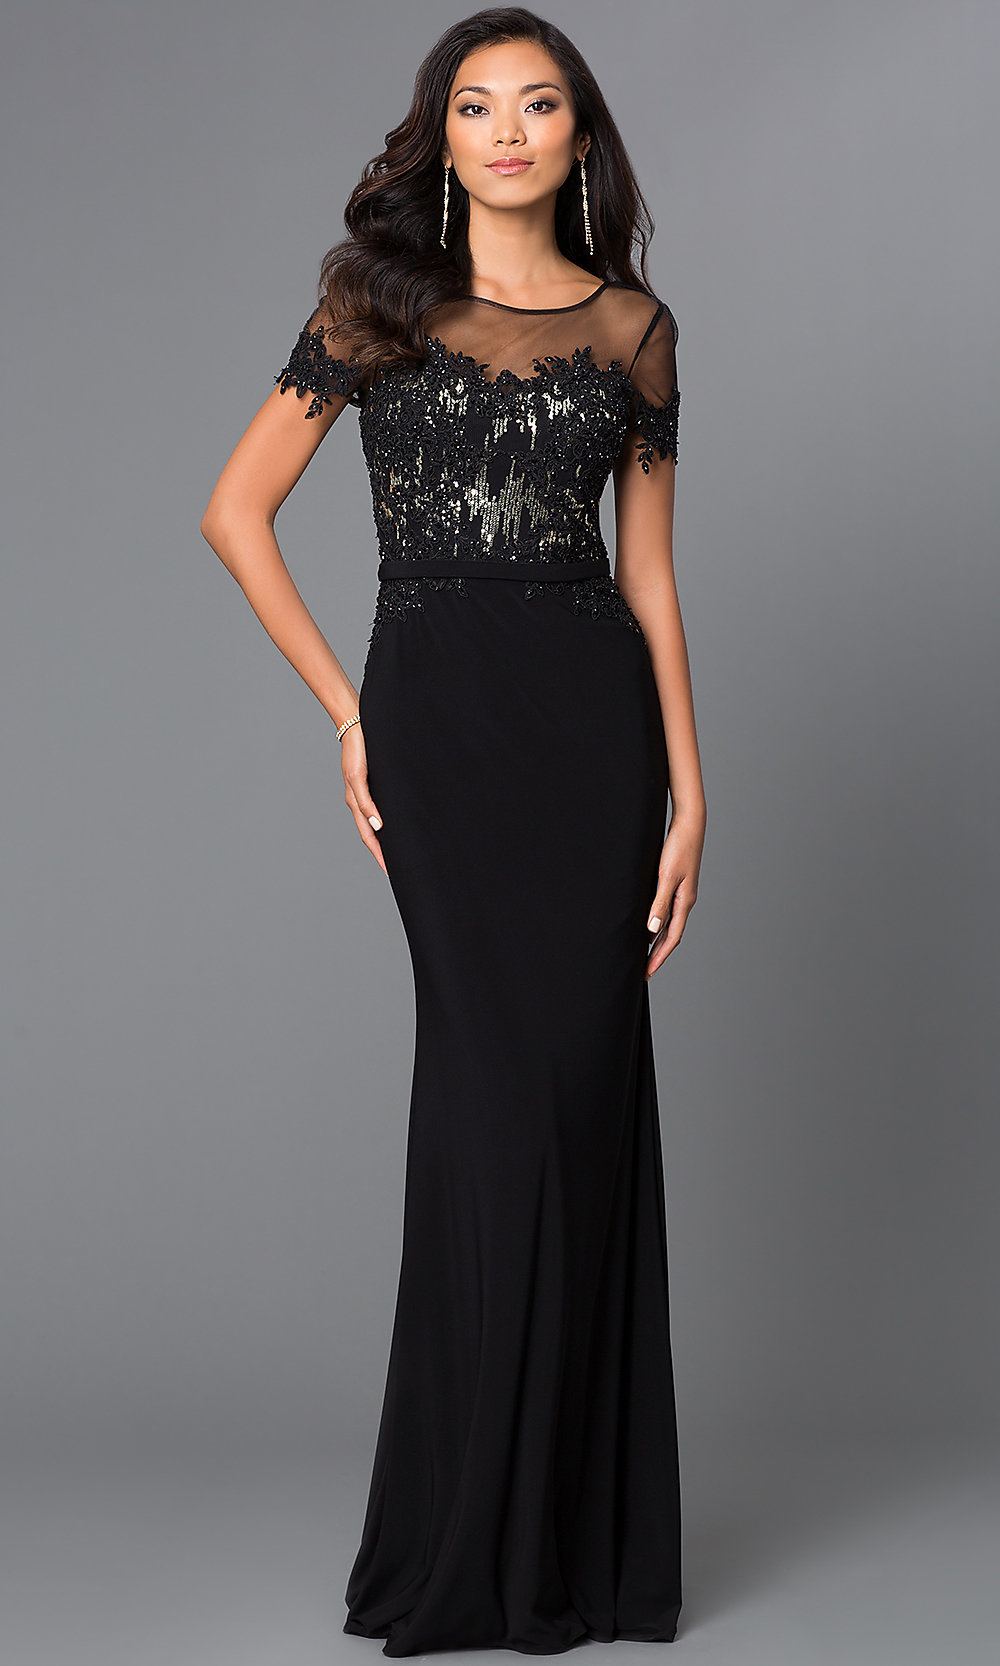 Wedding Black Formal Gowns prom dresses celebrity sexy evening gowns floor length hover to zoom